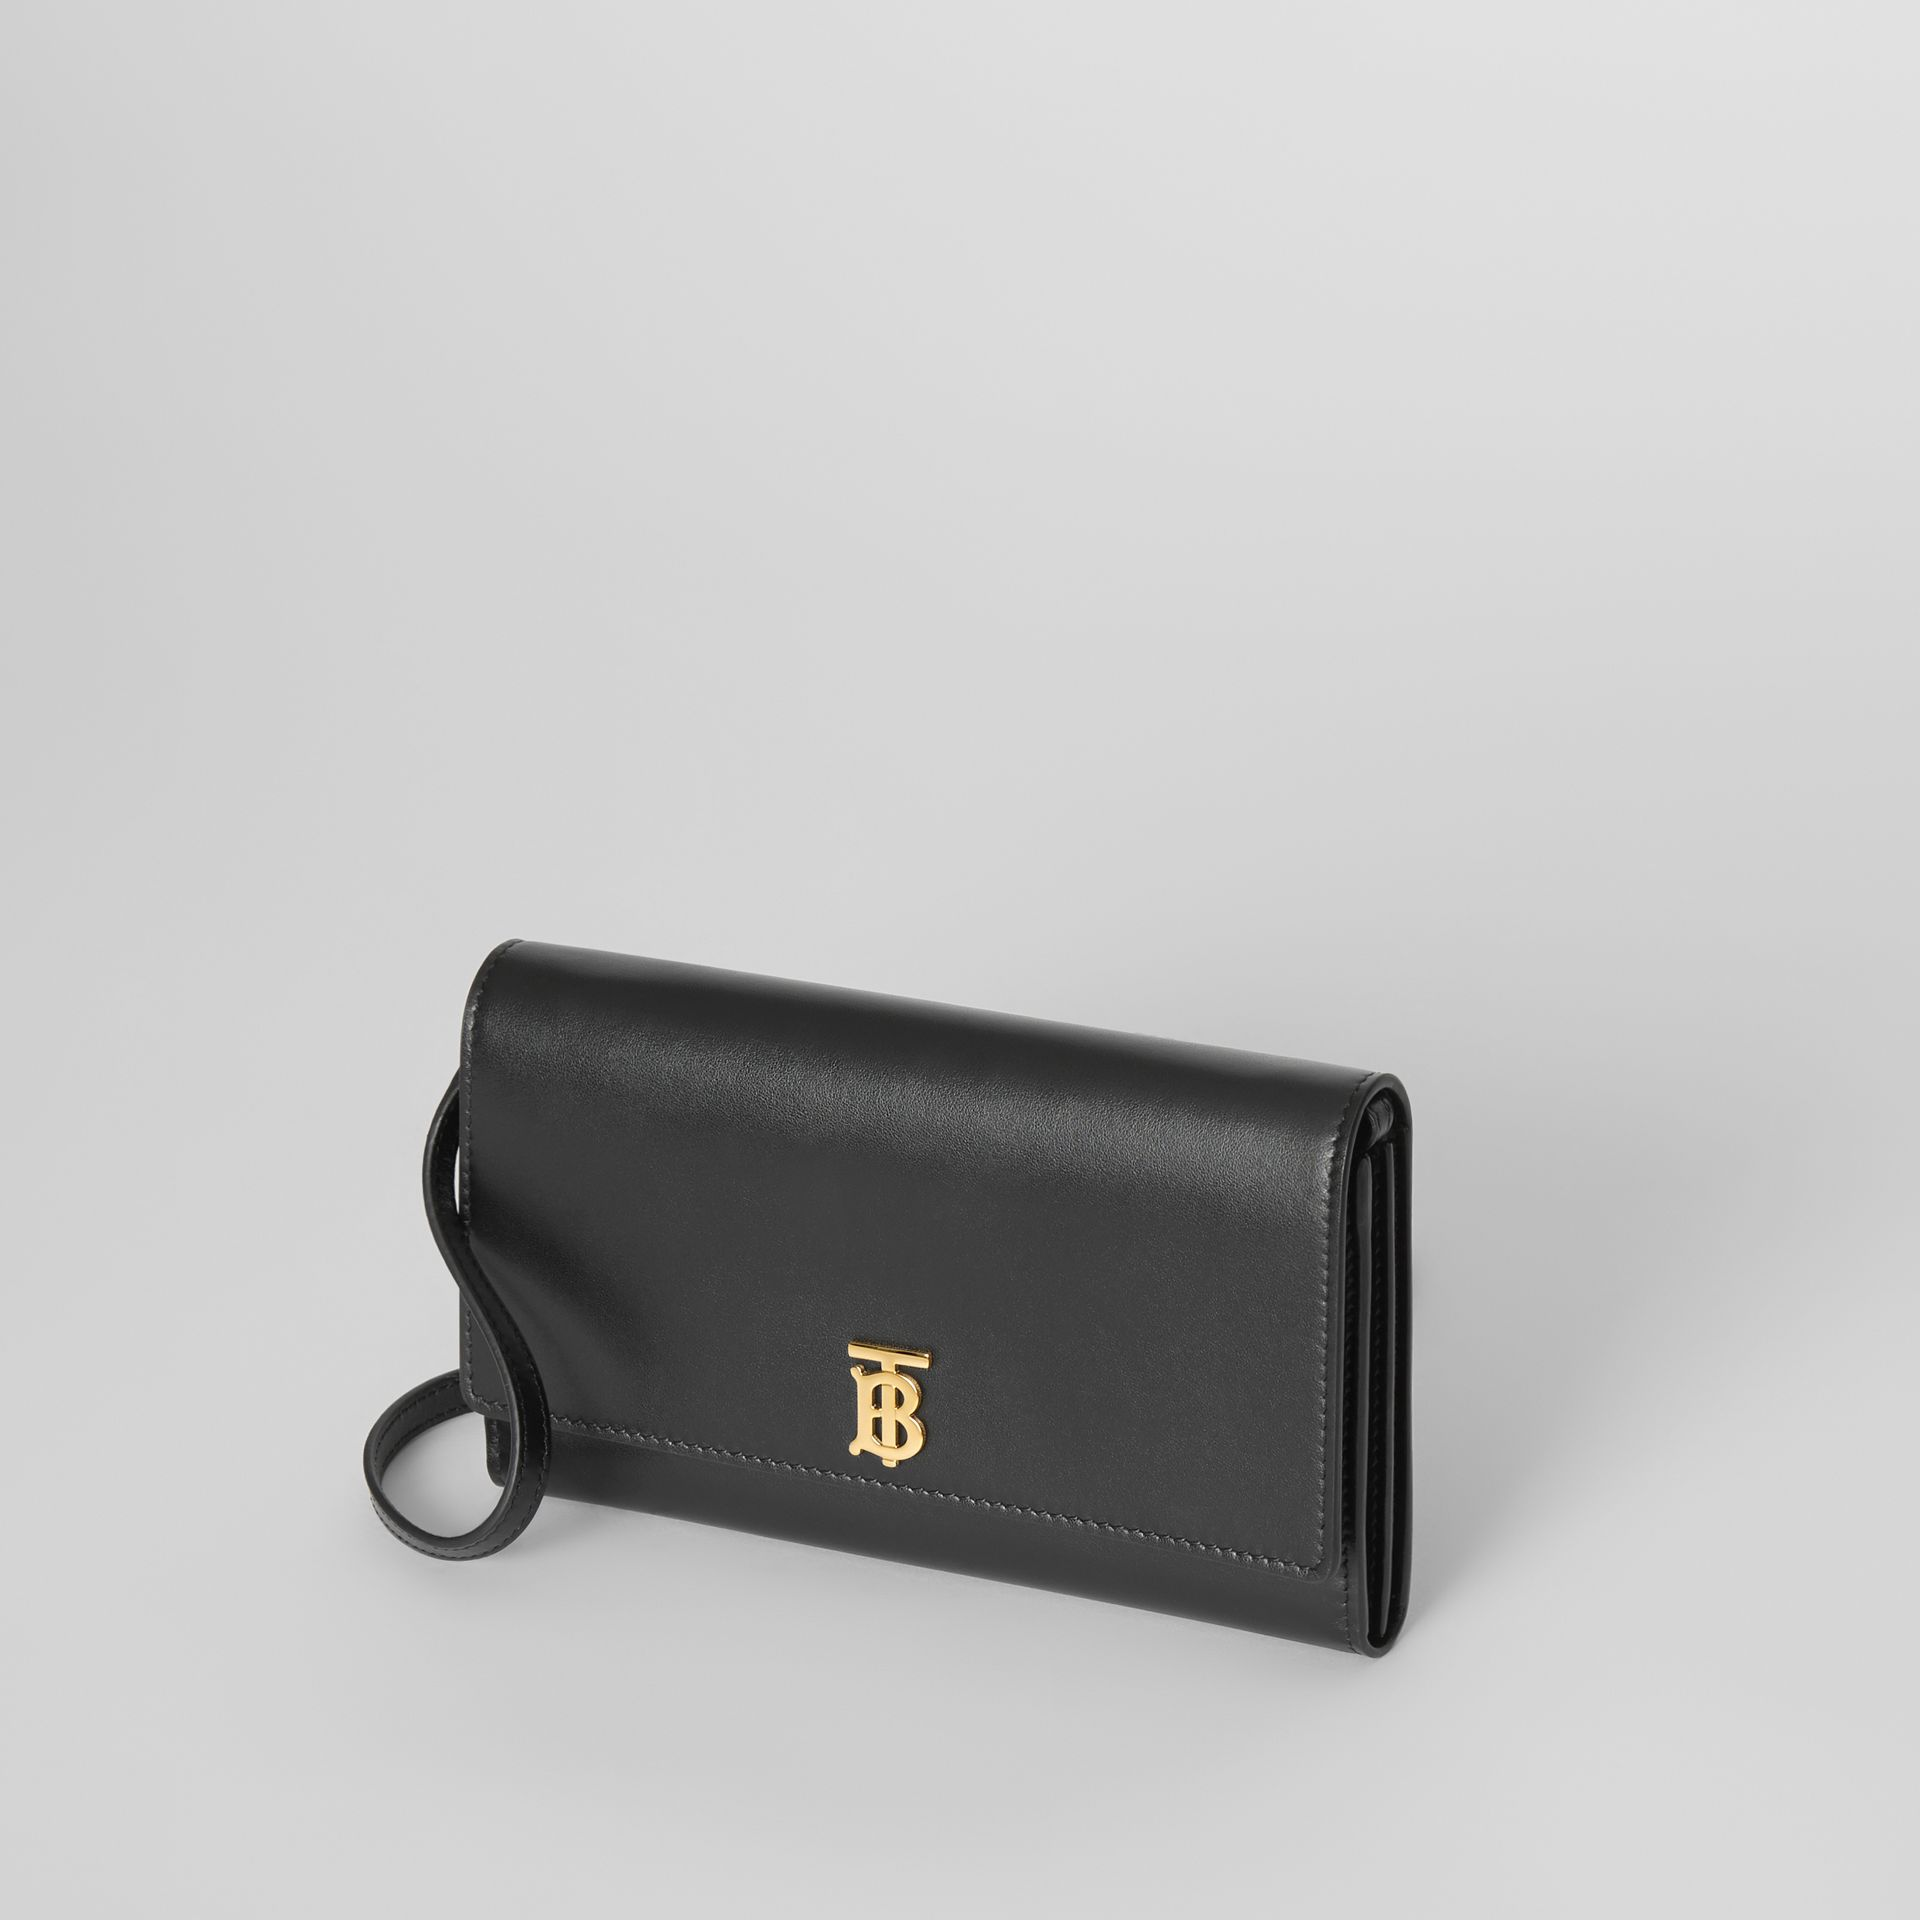 Monogram Motif Leather Wallet with Detachable Strap in Black - Women | Burberry - gallery image 3